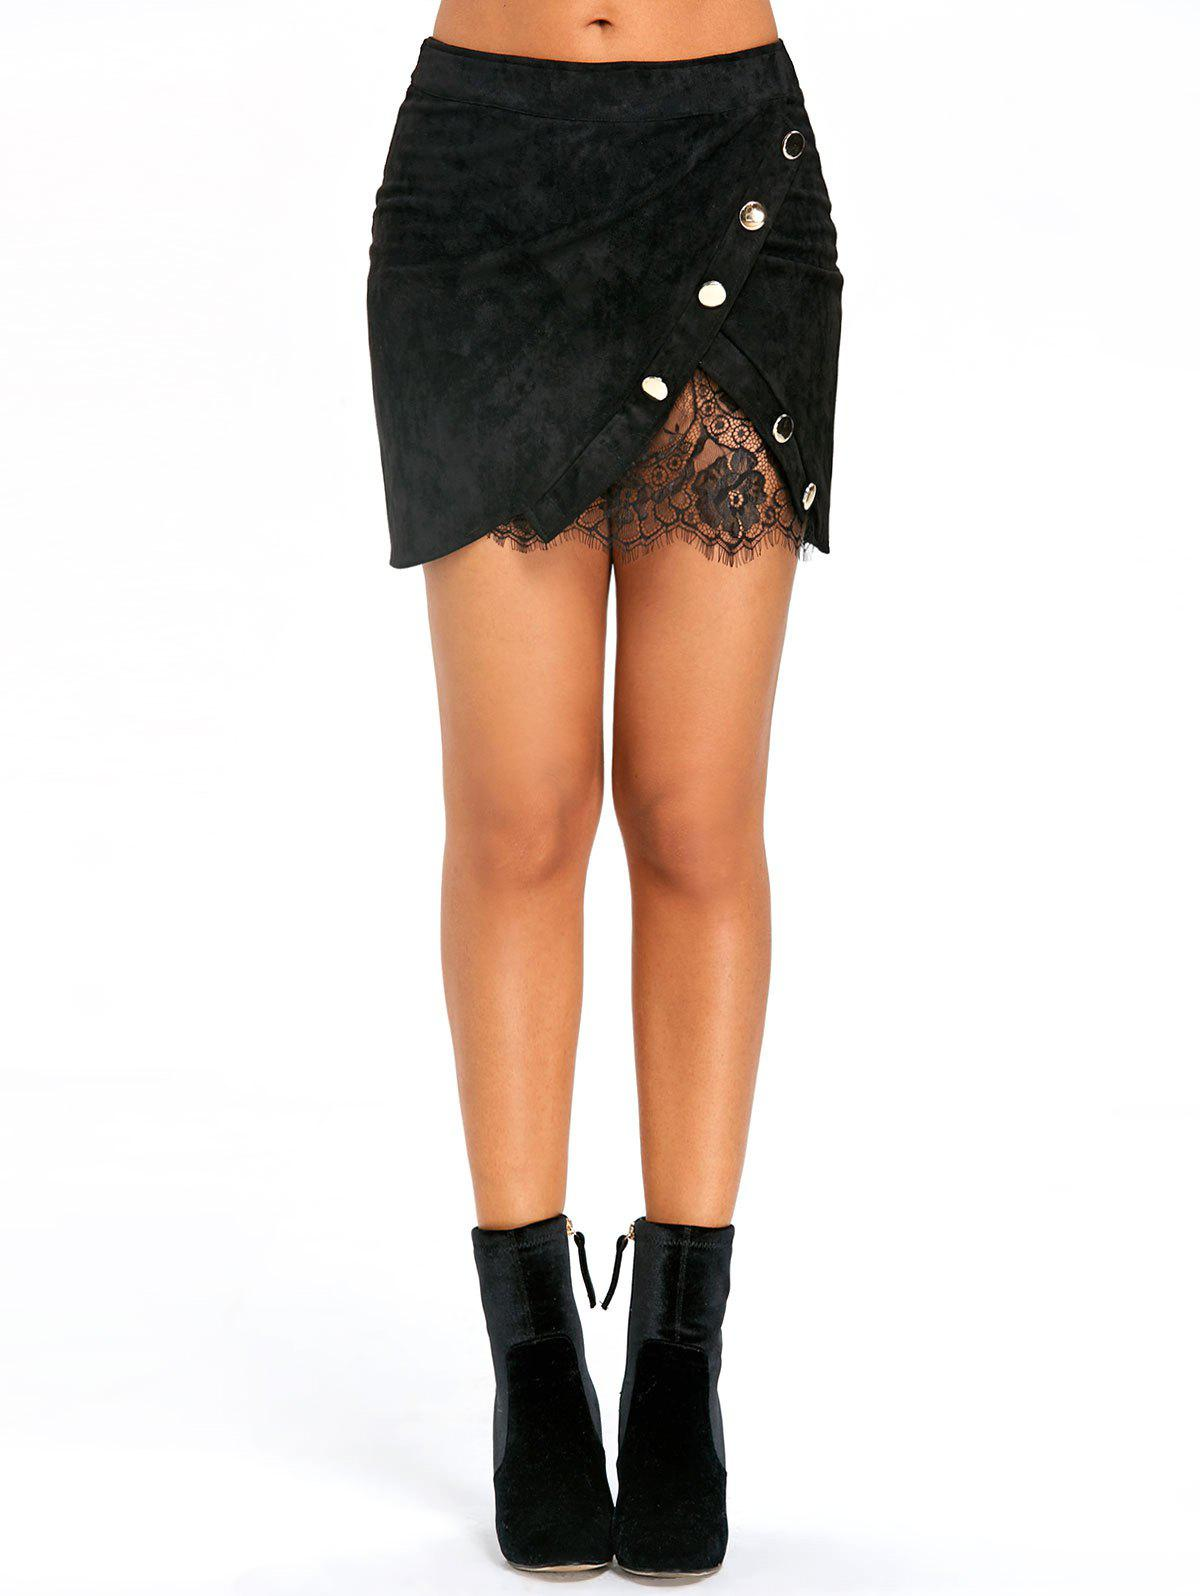 Buttoned Lace Insert Mini Bodycon Skirt - BLACK S